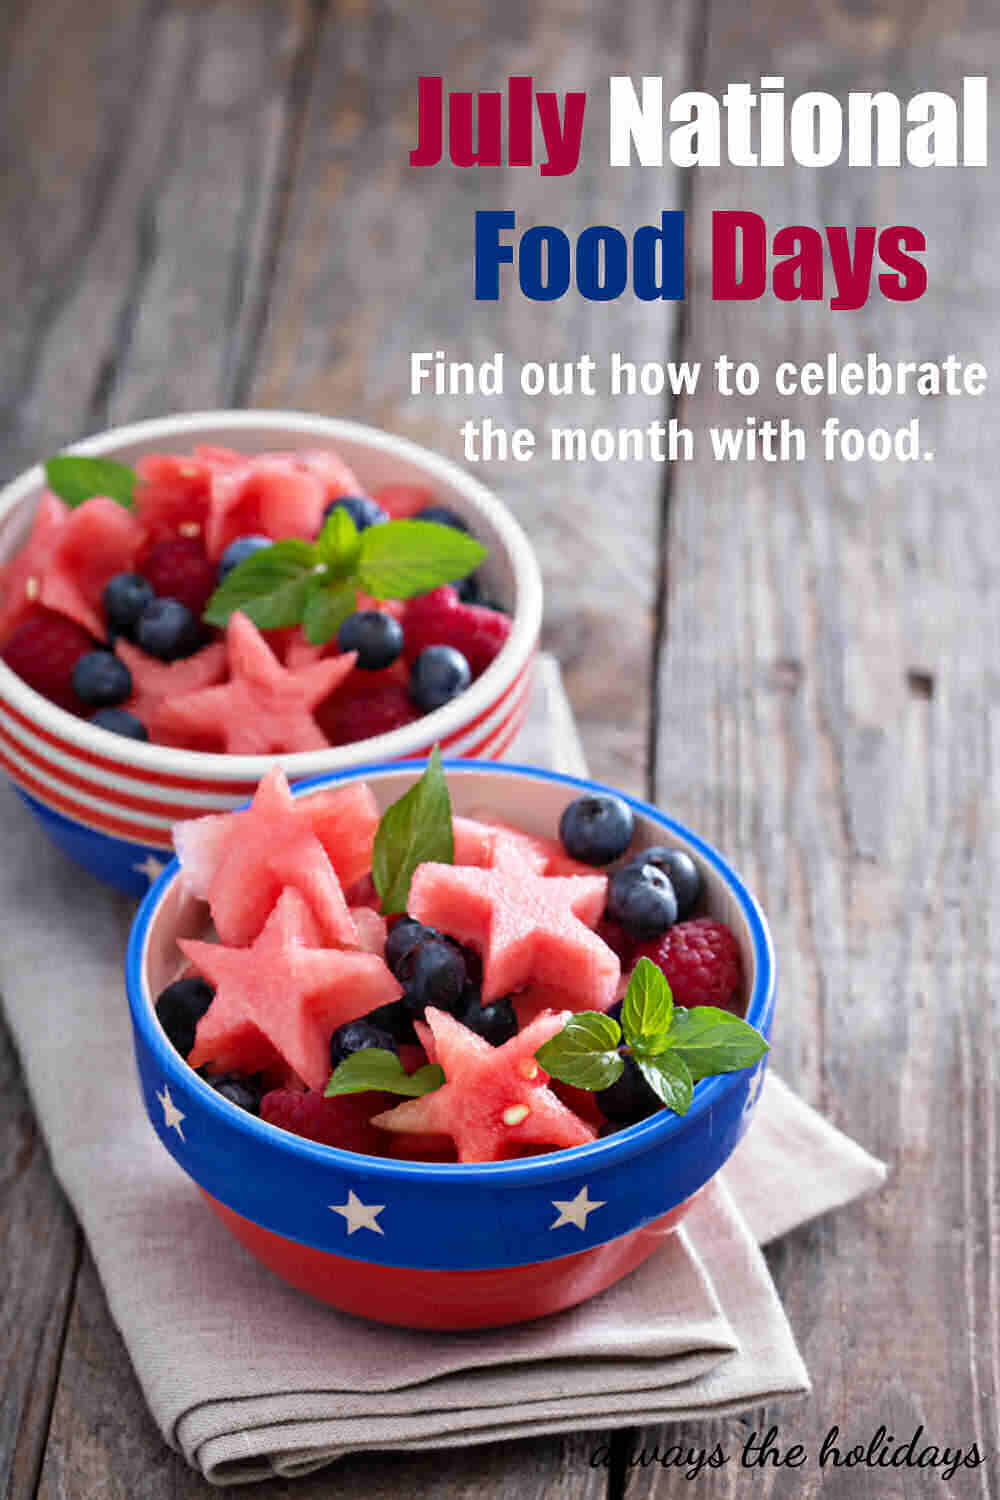 Bowls of salad with words July National Food Days - Find out how to celebrate the month with food.